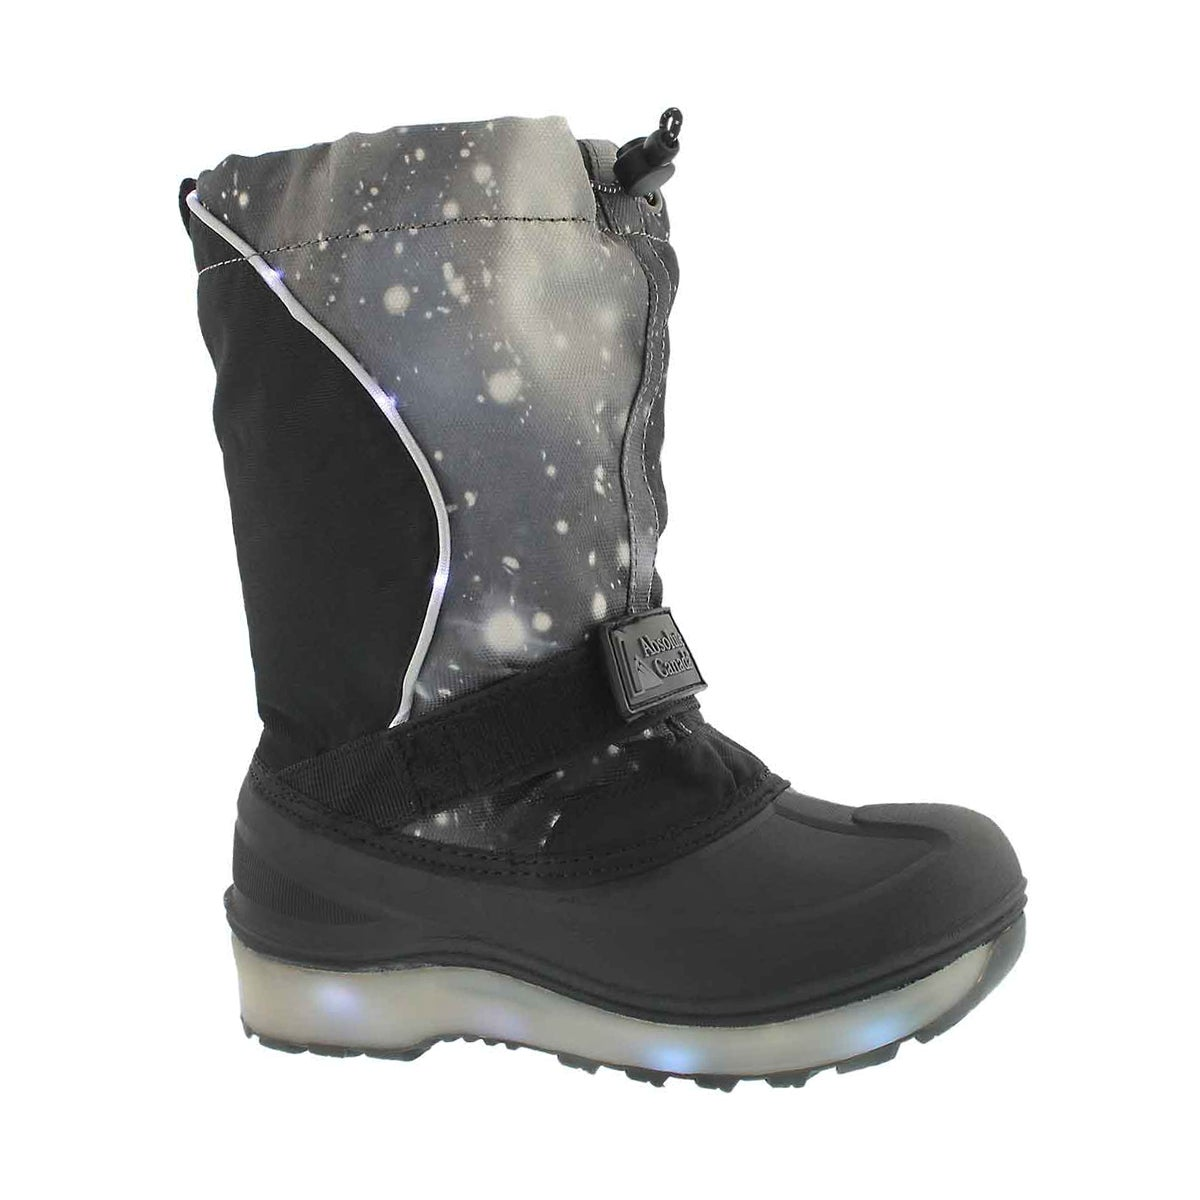 Boys' COSMOS grey waterproof light up winter boots